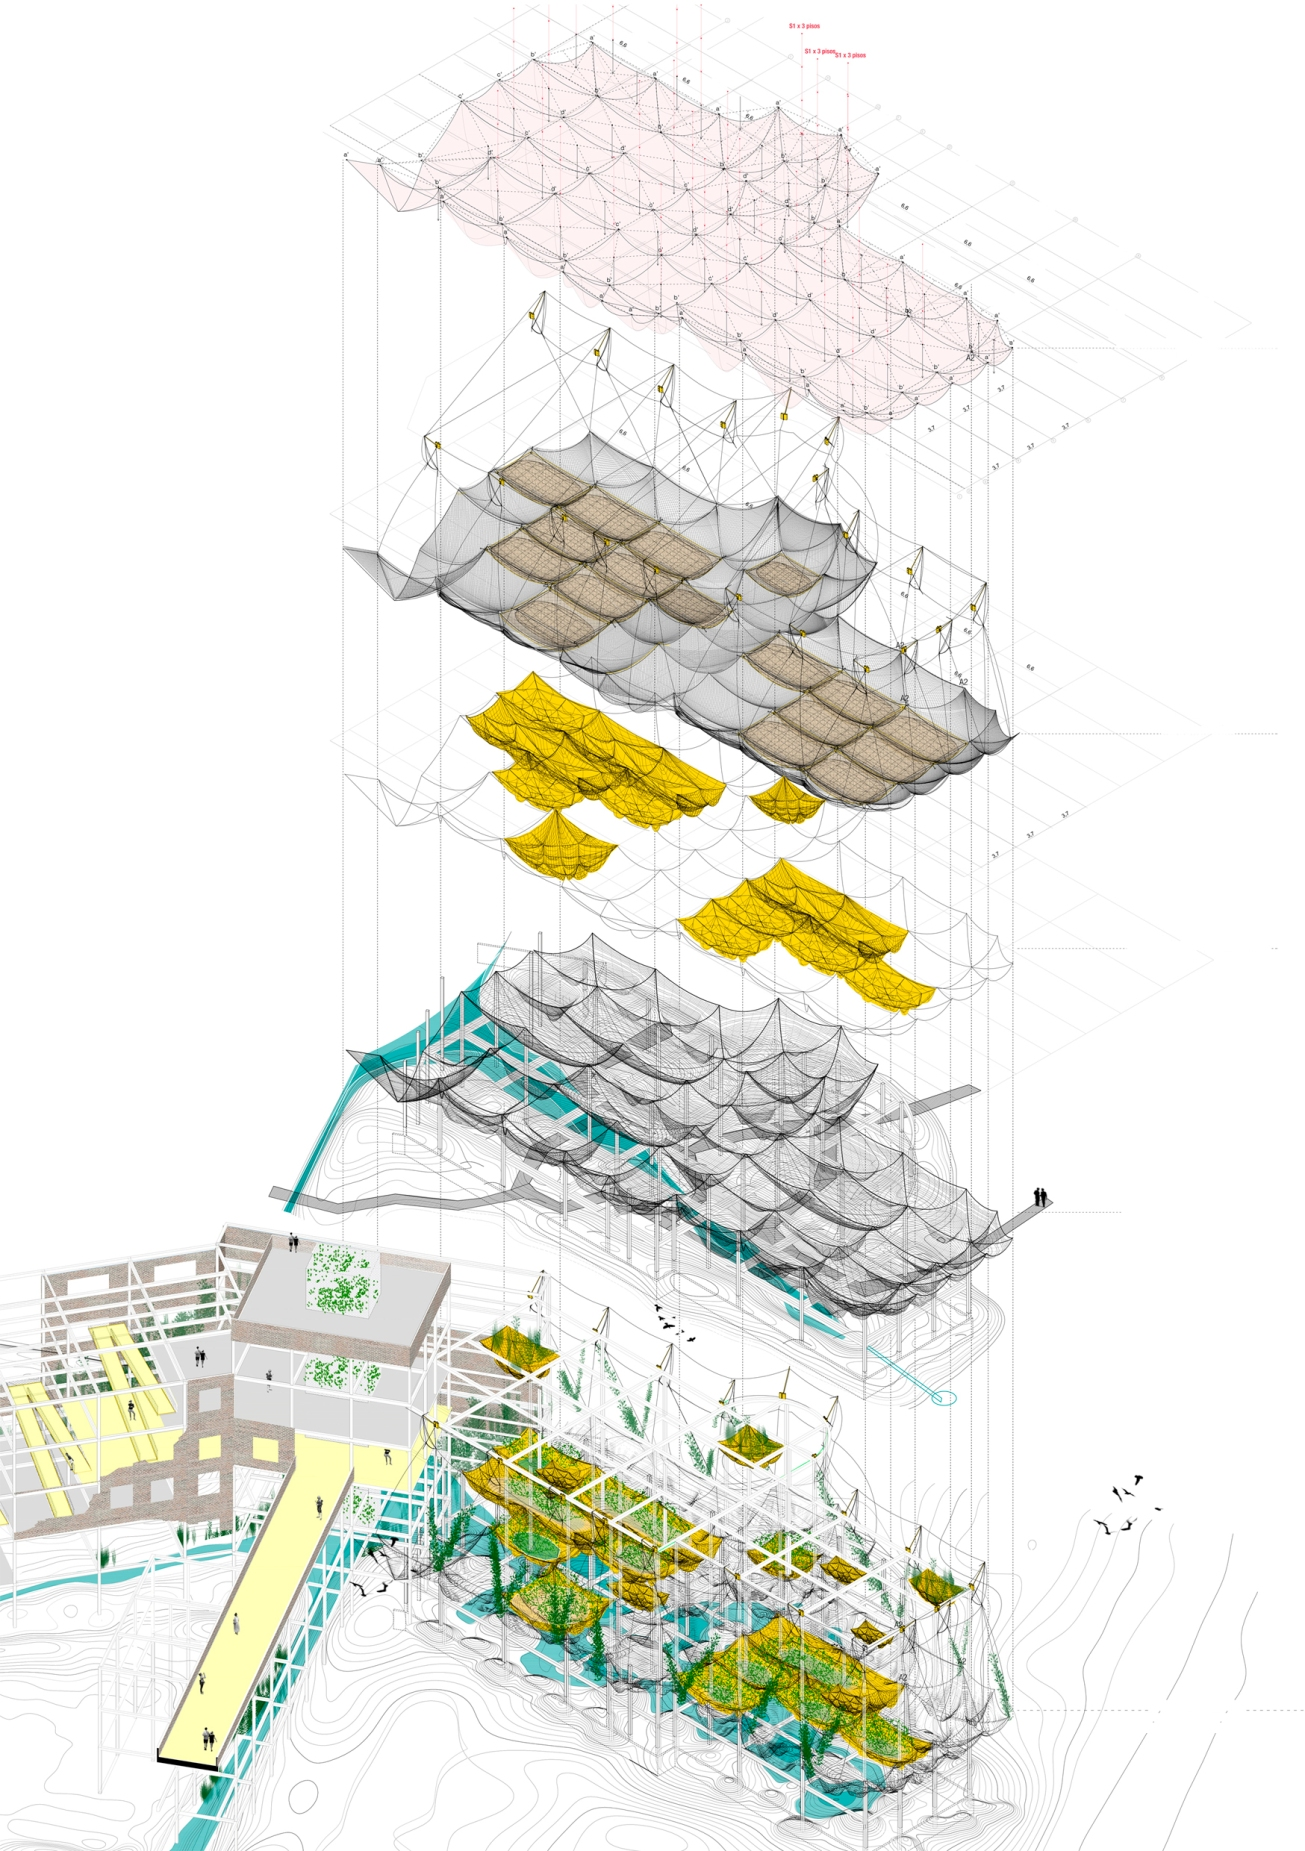 STRUCTURE_Roosevelt Island, management of the future ruins as landscape in motion, Laura Huerga, Final thesis project